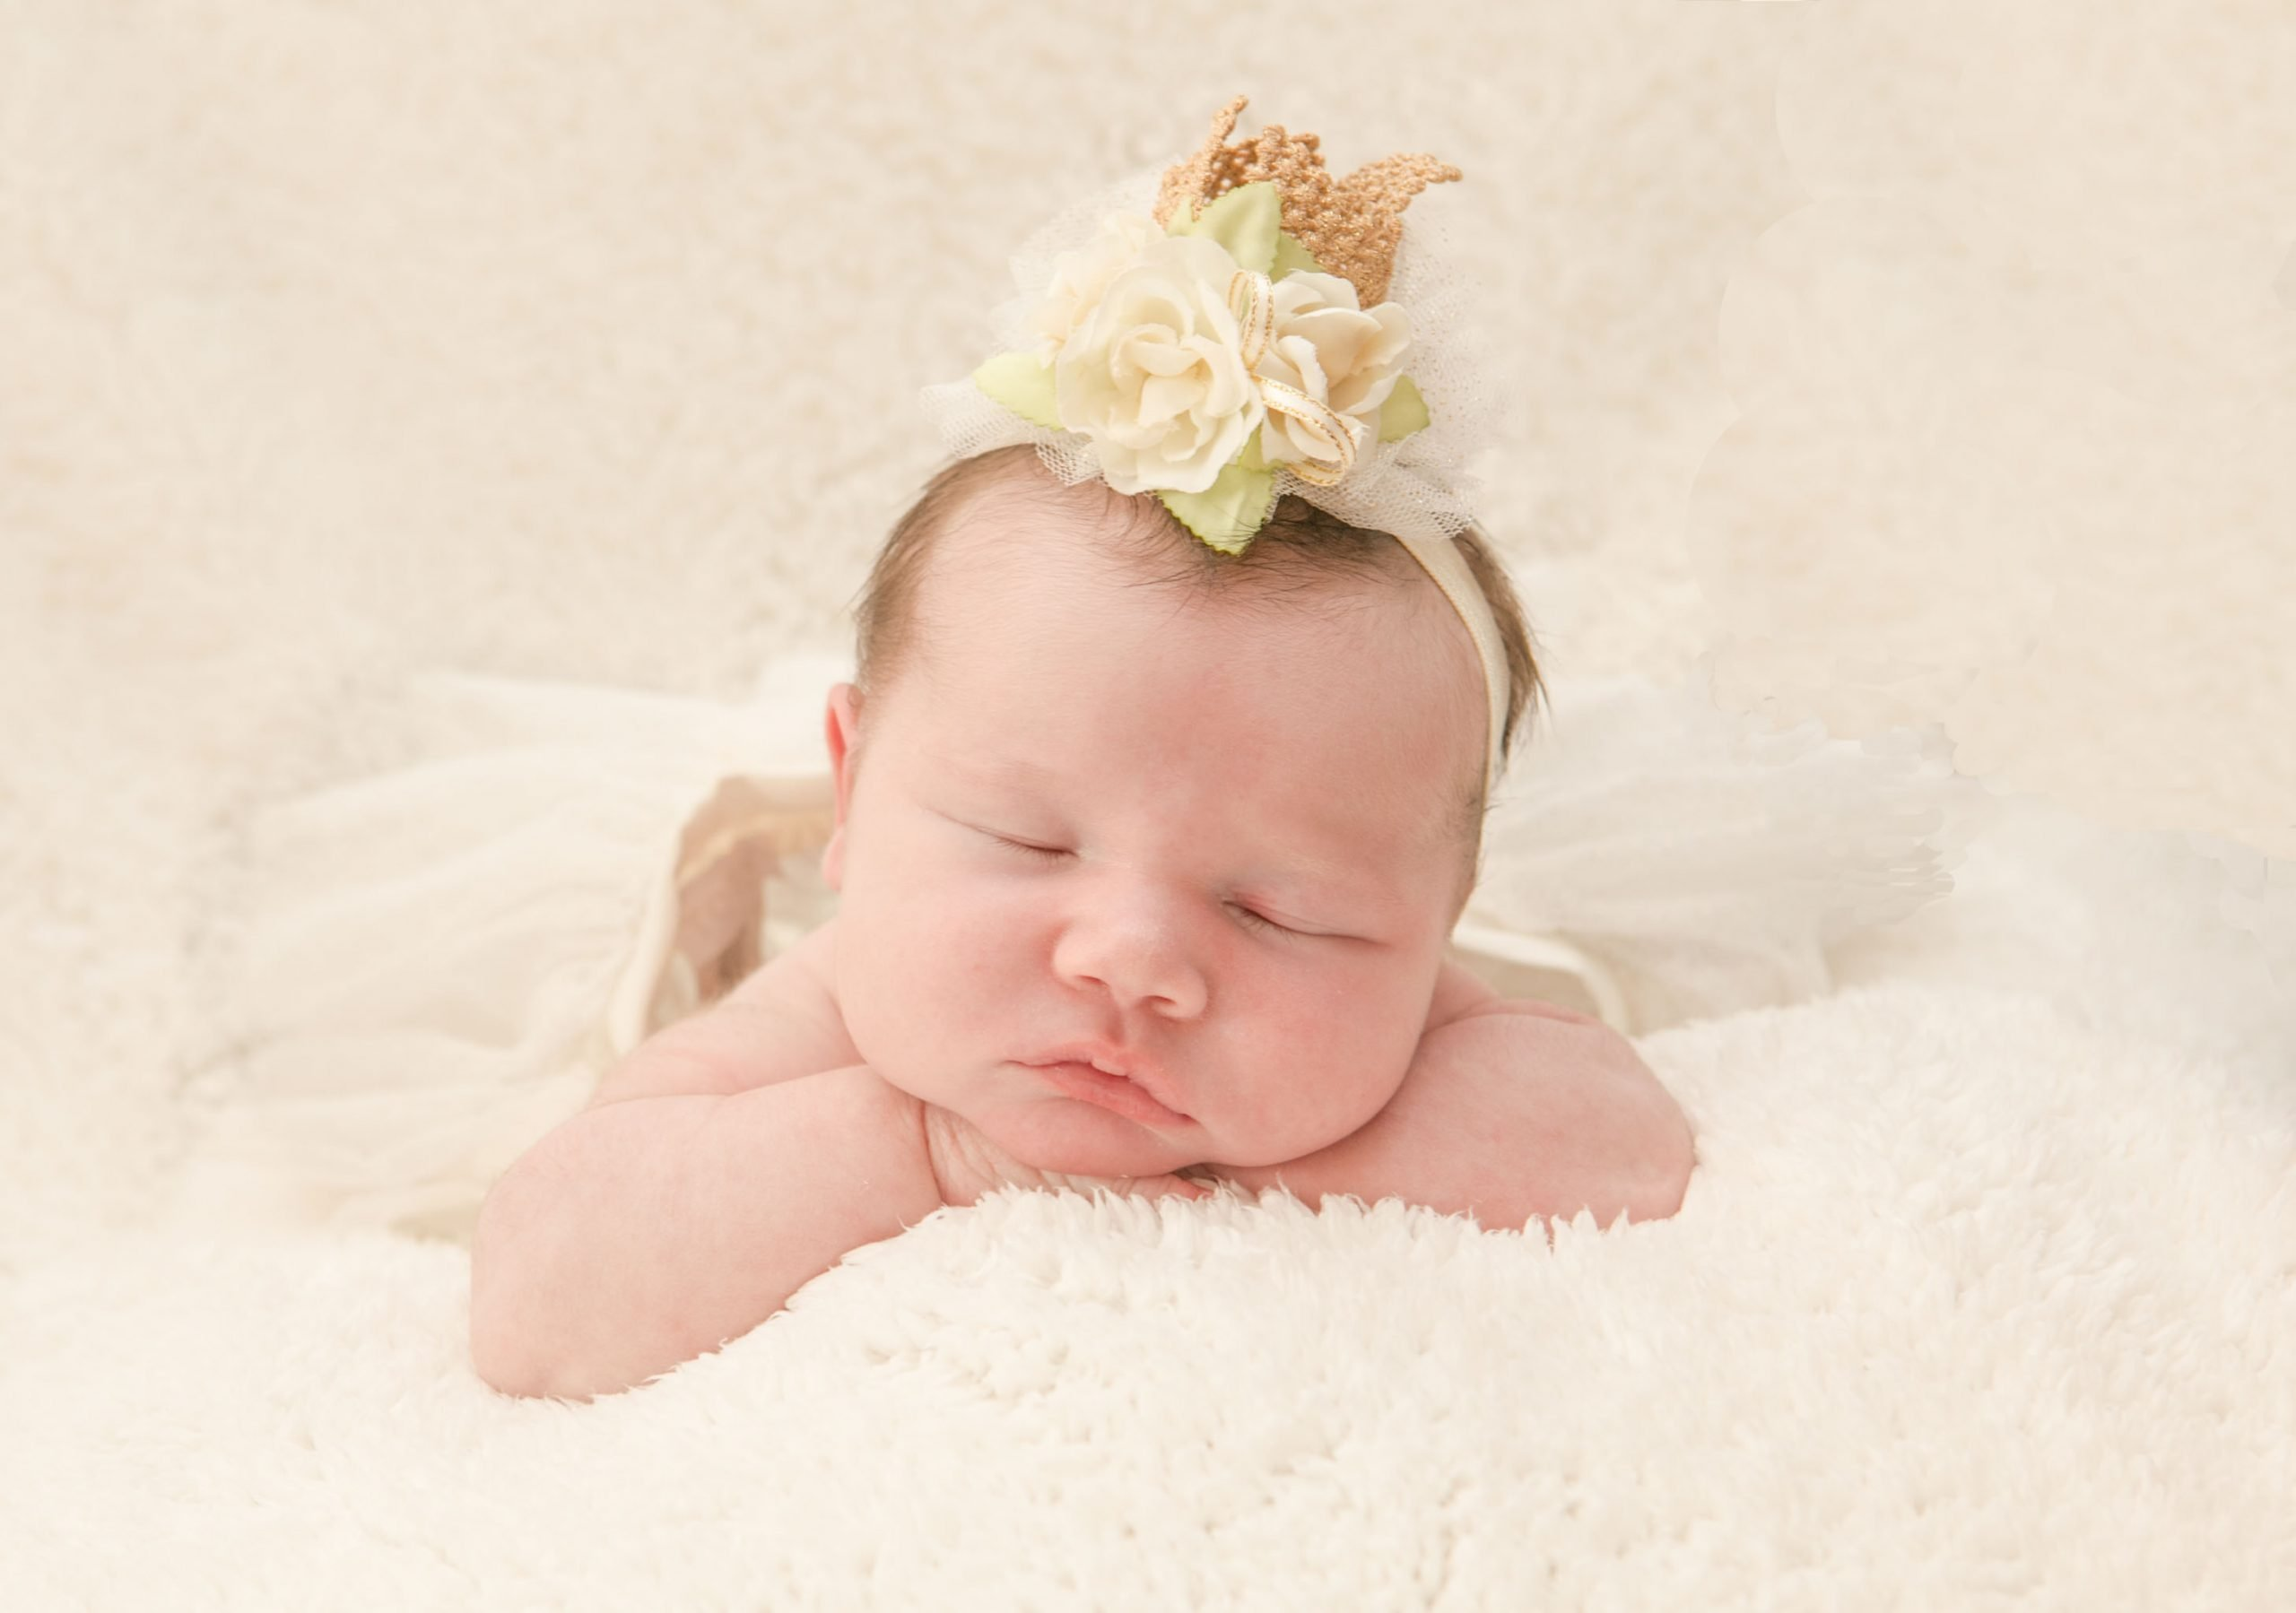 Newborn Session with Baby Elsie-Grace, Tania Miller Photography, Cardiff Newborn Photographer